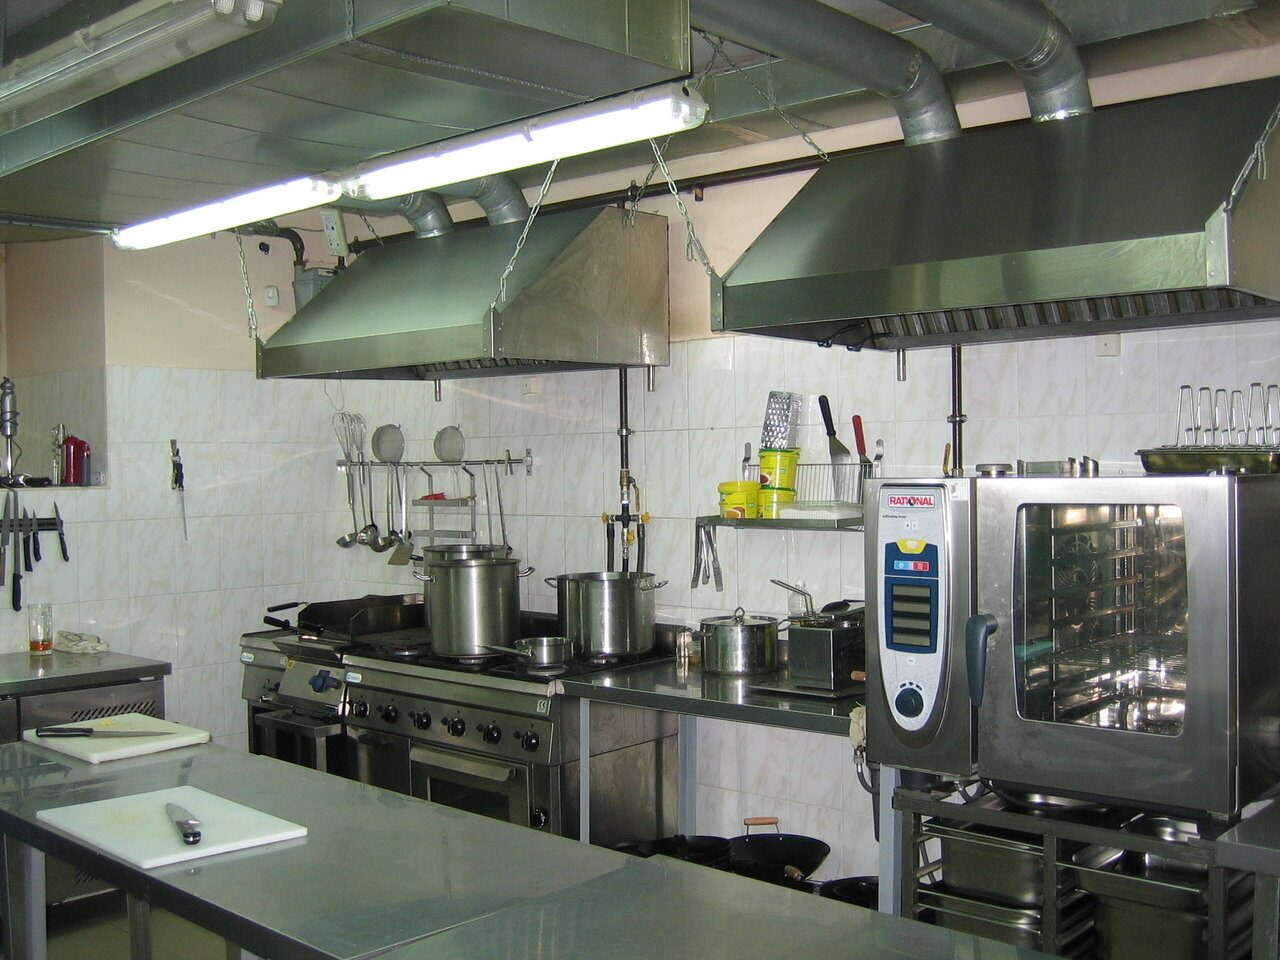 Commercial kitchen hood design best free home design for Commercial kitchen hoods designs